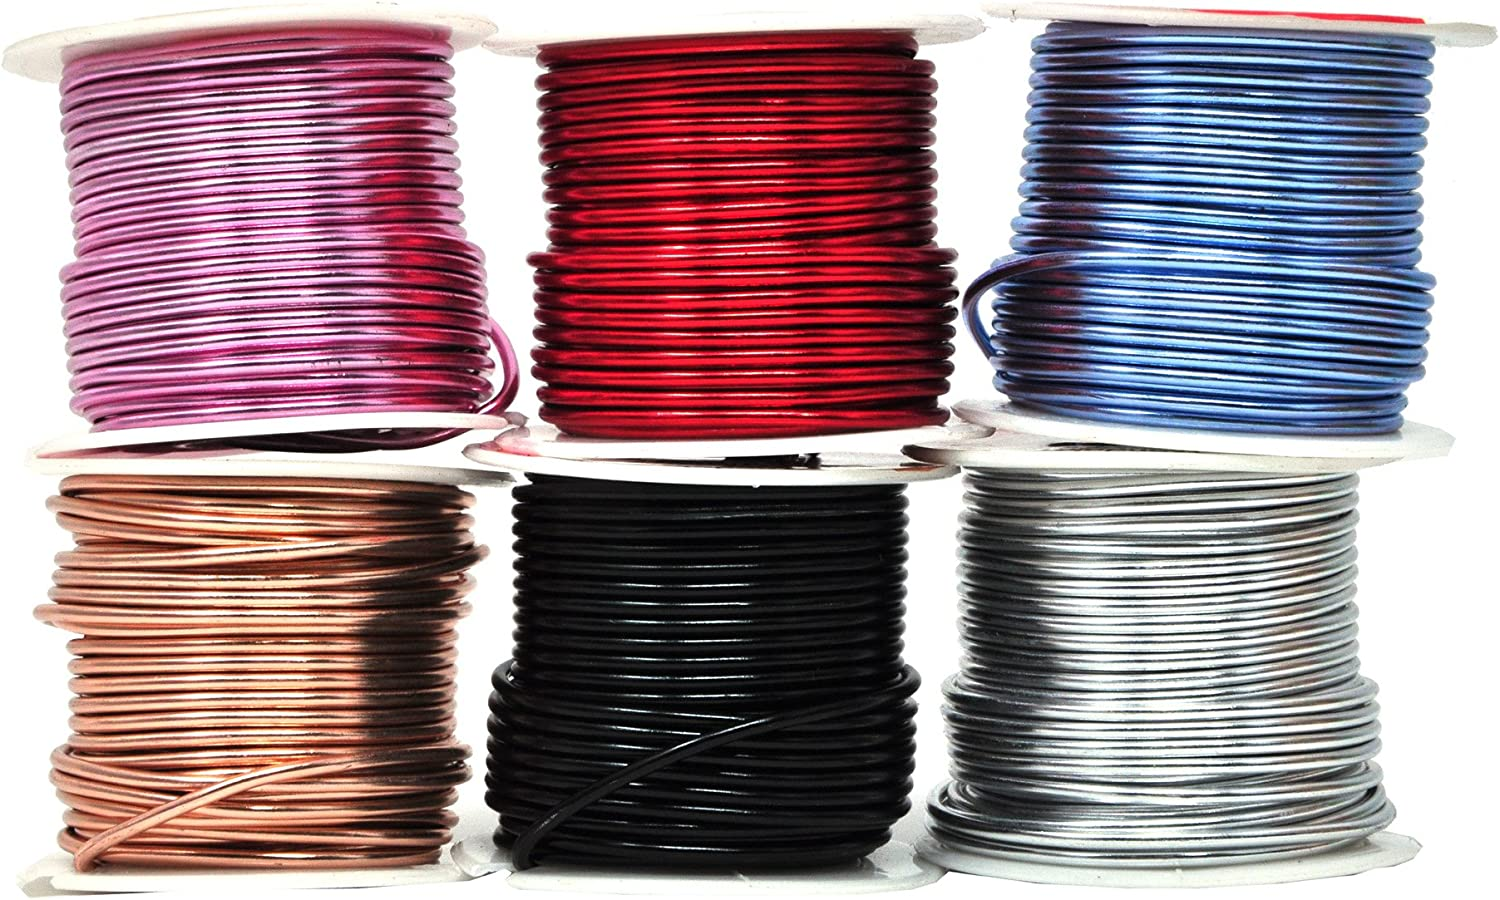 Mandala Crafts Anodized Aluminum Wire for Sculpting, Armature, Jewelry Making, Gem Metal Wrap, Garden, Colored and Soft, Assorted 6 Rolls (12 Gauge, Combo 8)